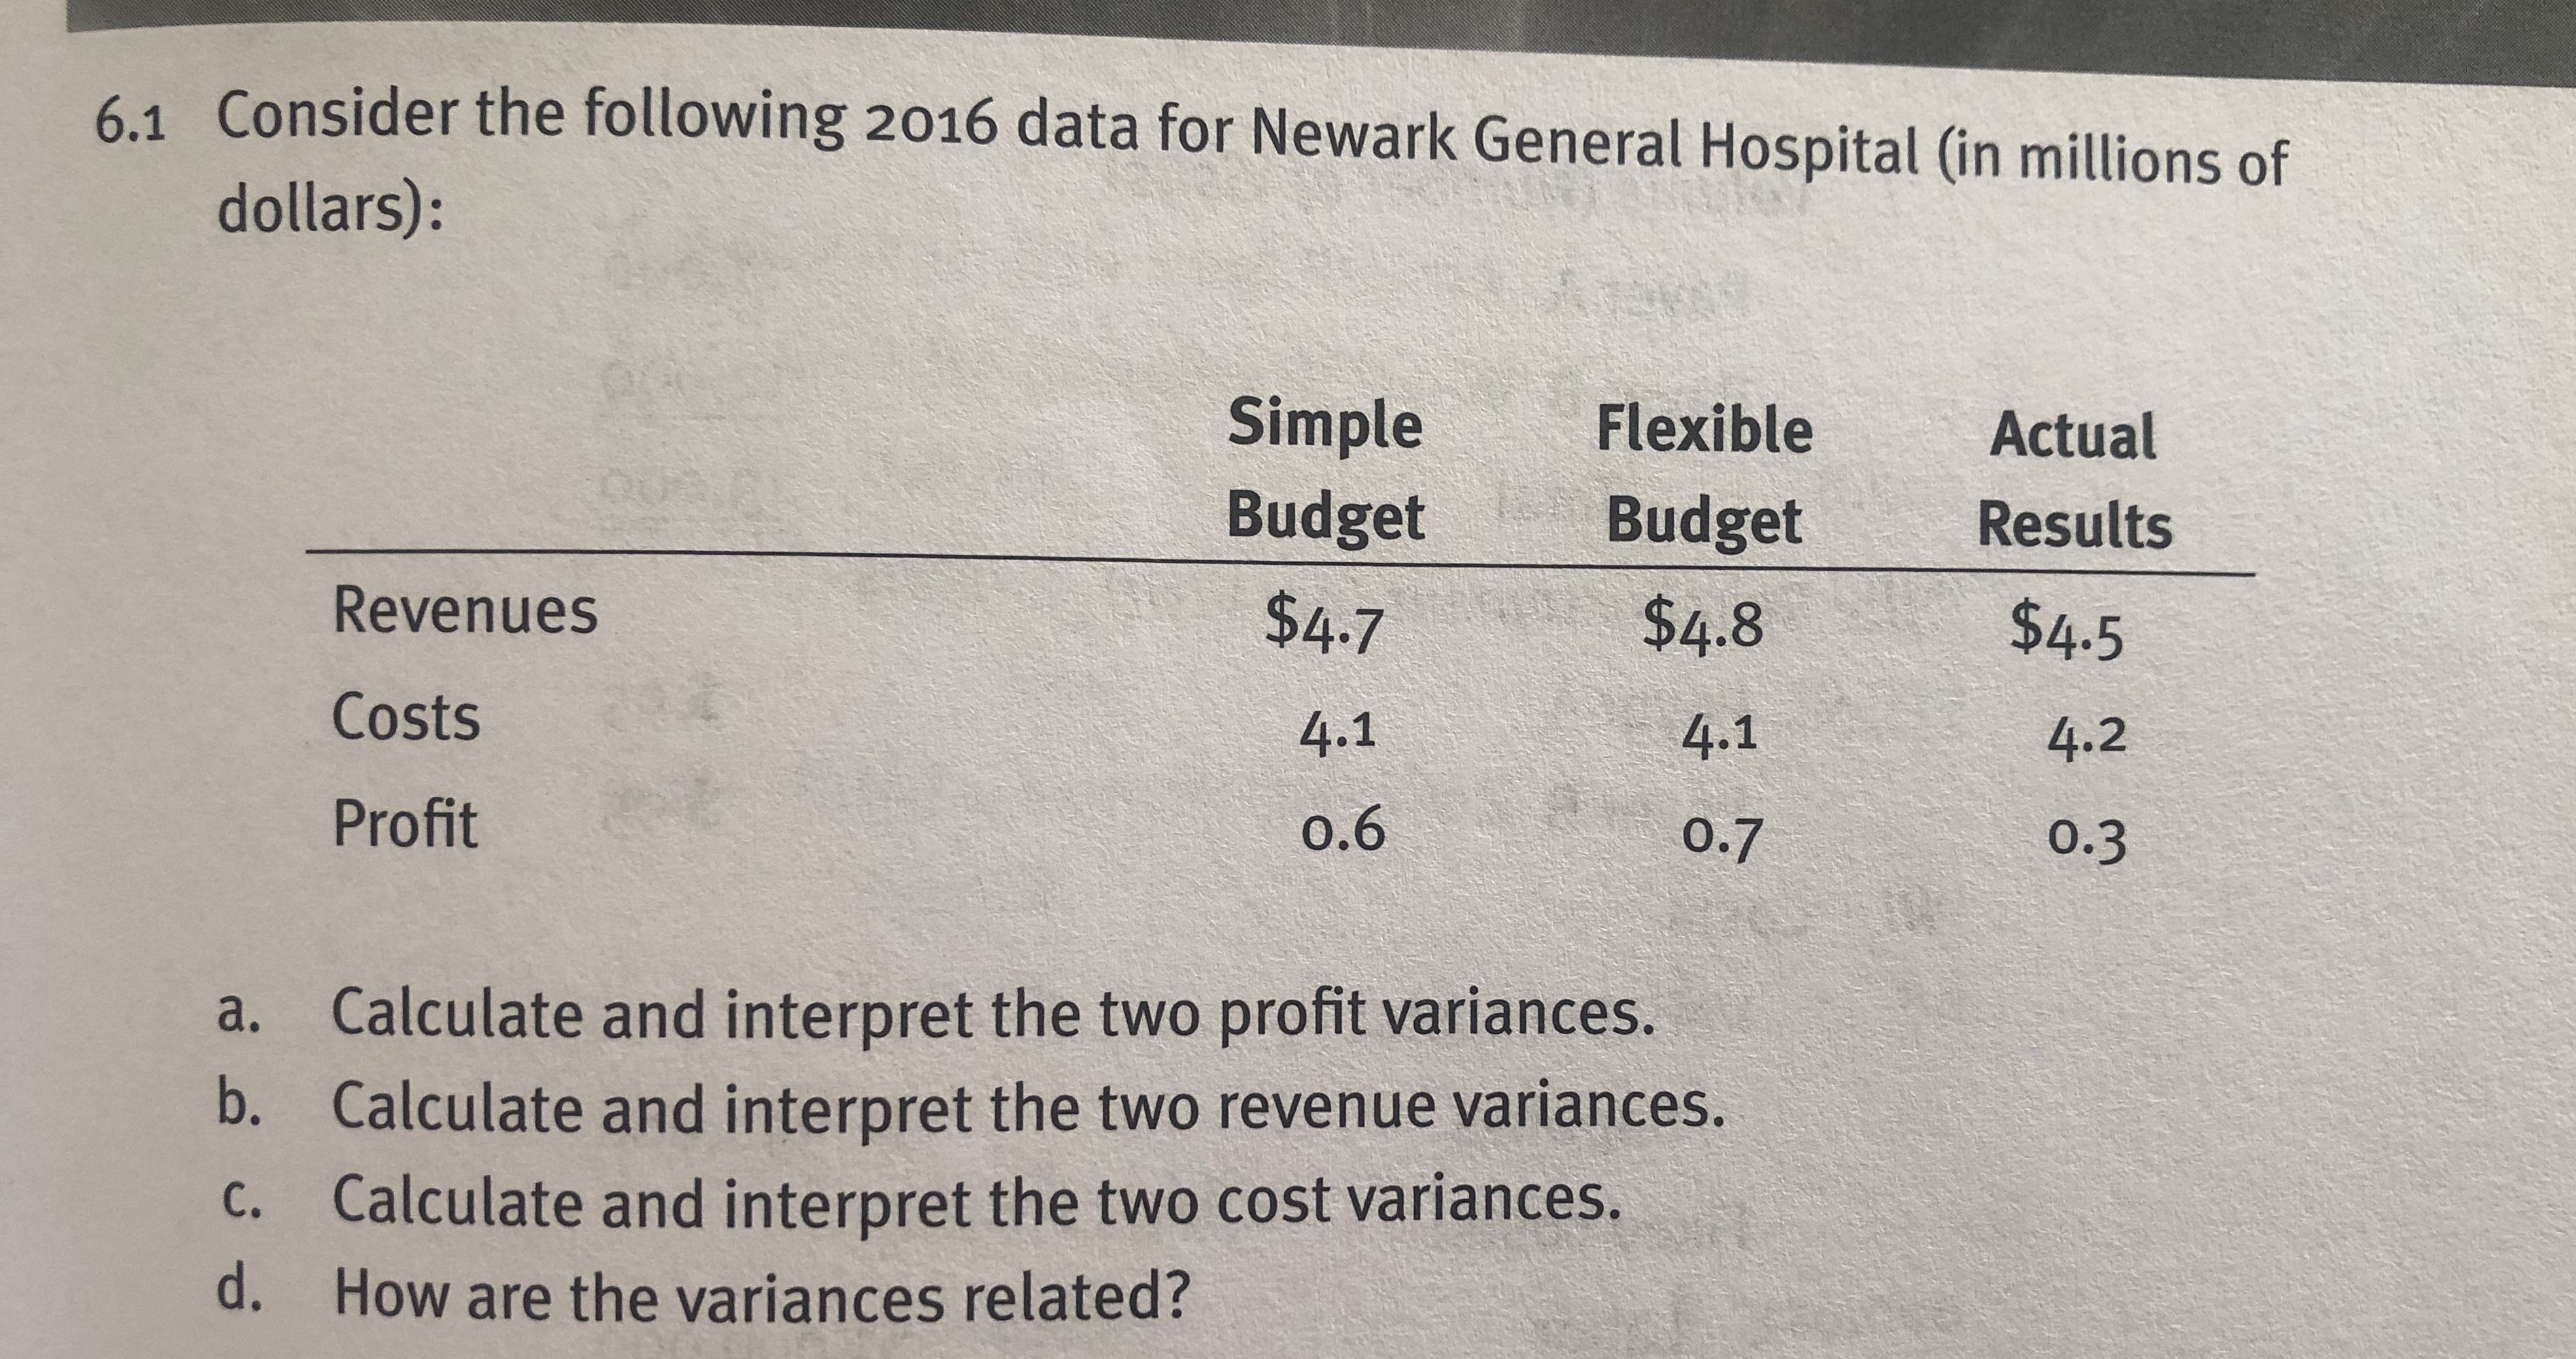 Consider the following 2016 data for Newark General Hospital (in millions of dollars): 6.1 Simple Flexible BudgetBudget Revenues Costs Profit $4.7 4.1 o.6 $4.8 4.1 0.7 Actual Results $4.5 4.2 0.3 a. b. c. d. Calculate and interpret the two profit variances. Calculate and interpret the two revenue variances. Calculate and interpret the two cost variances. How are the variances related?